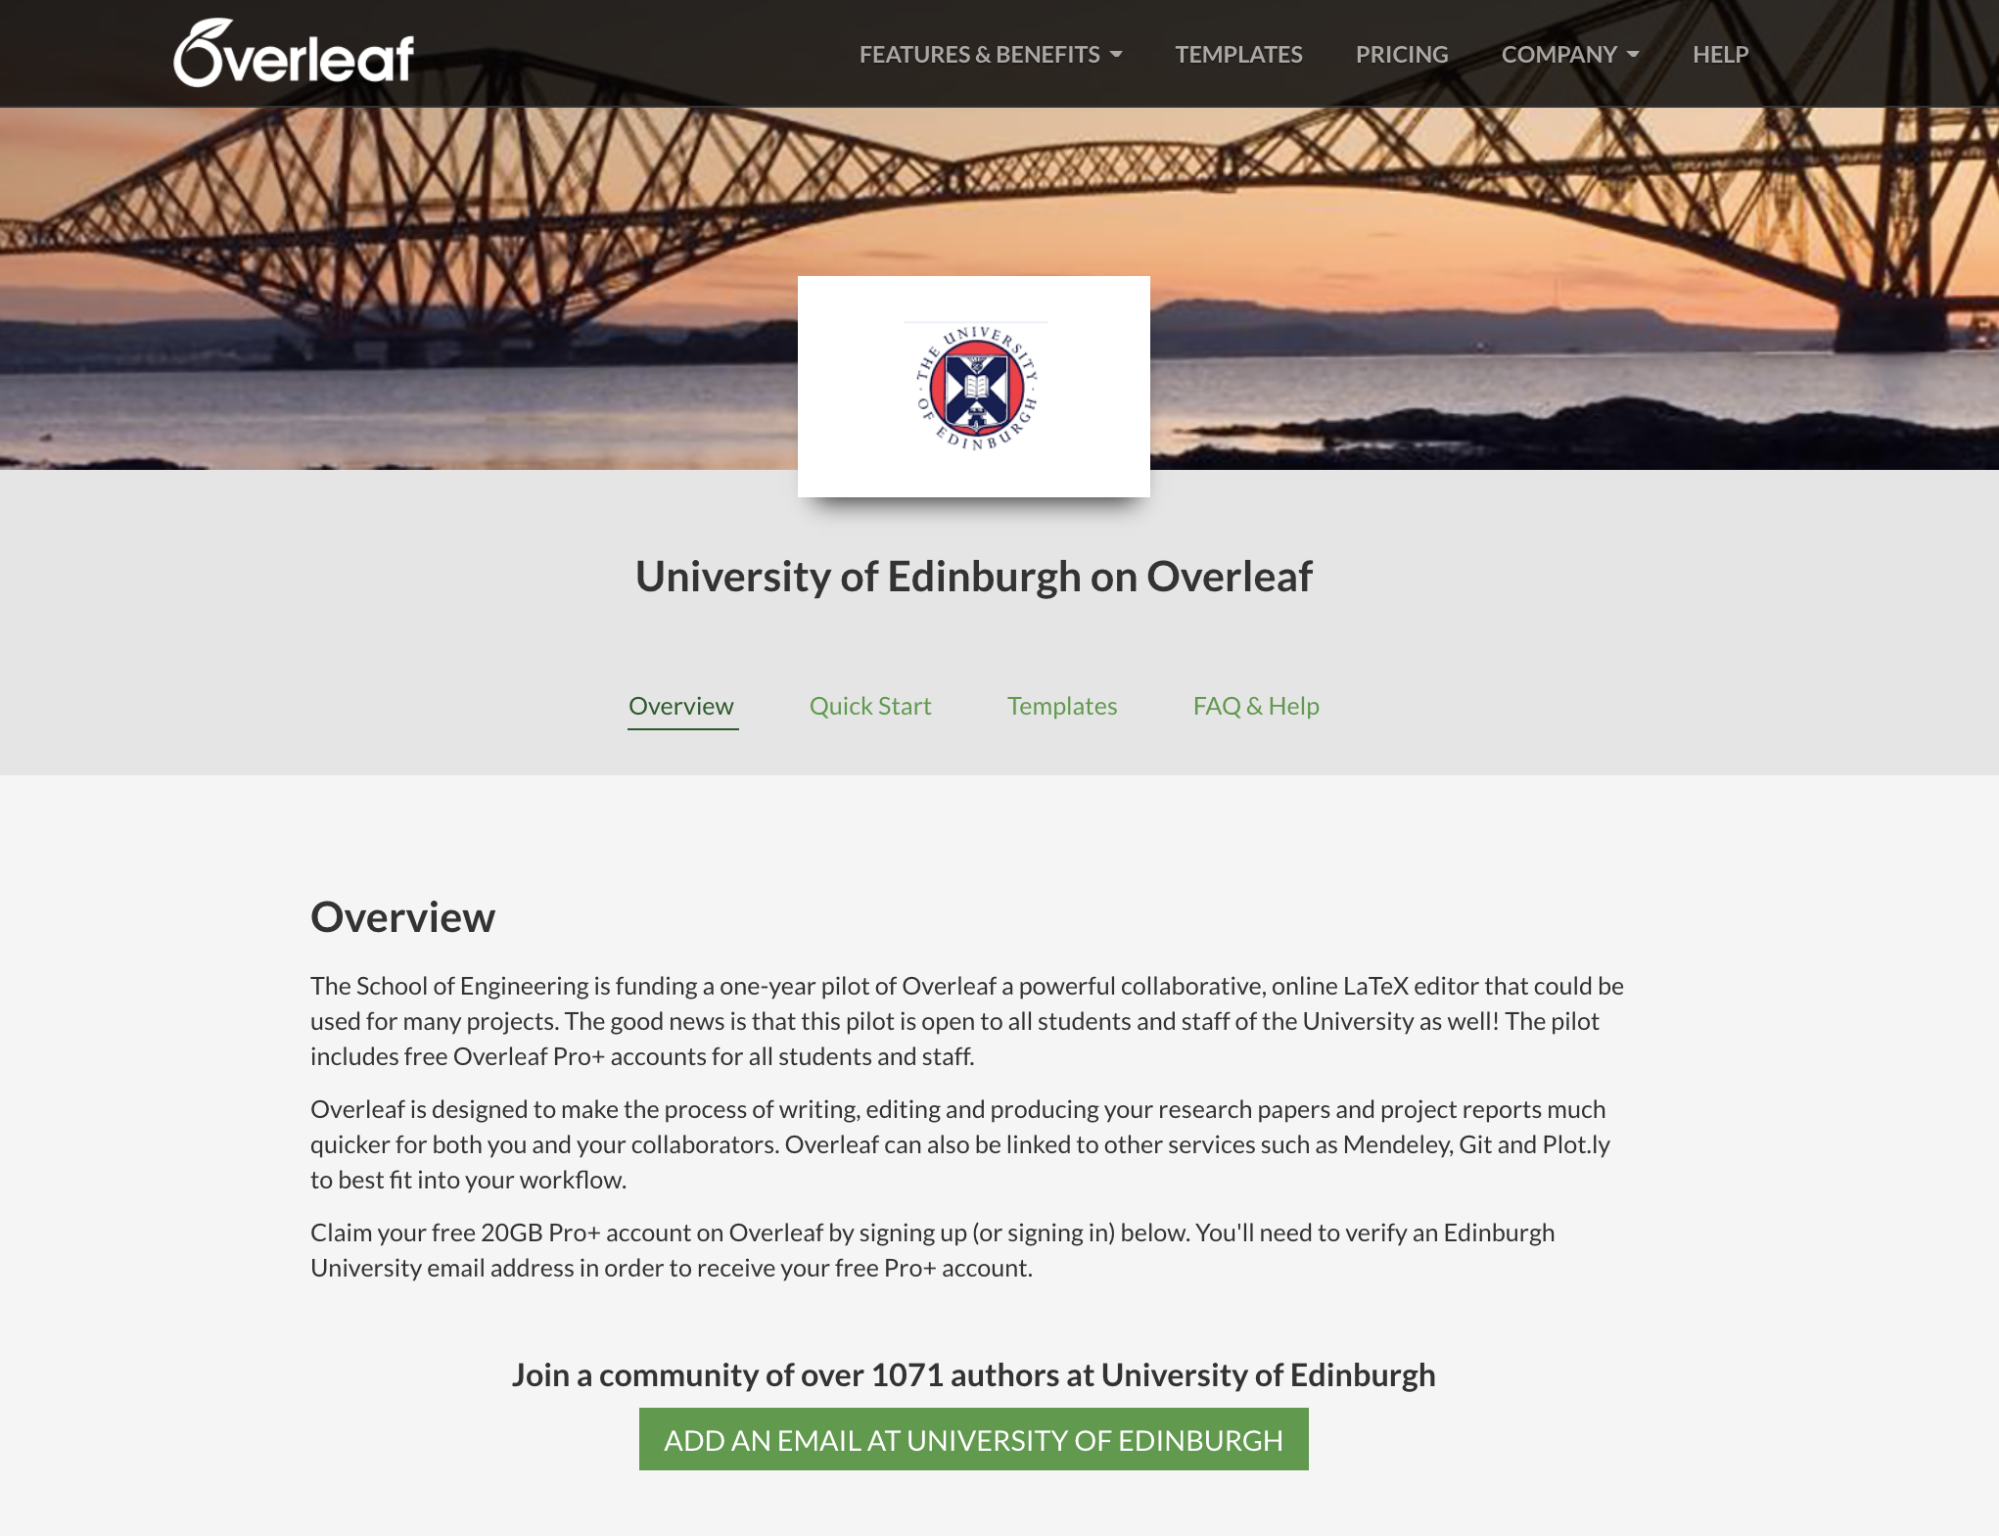 Screenshot showing the University of Edinburgh authoring portal on Overleaf.